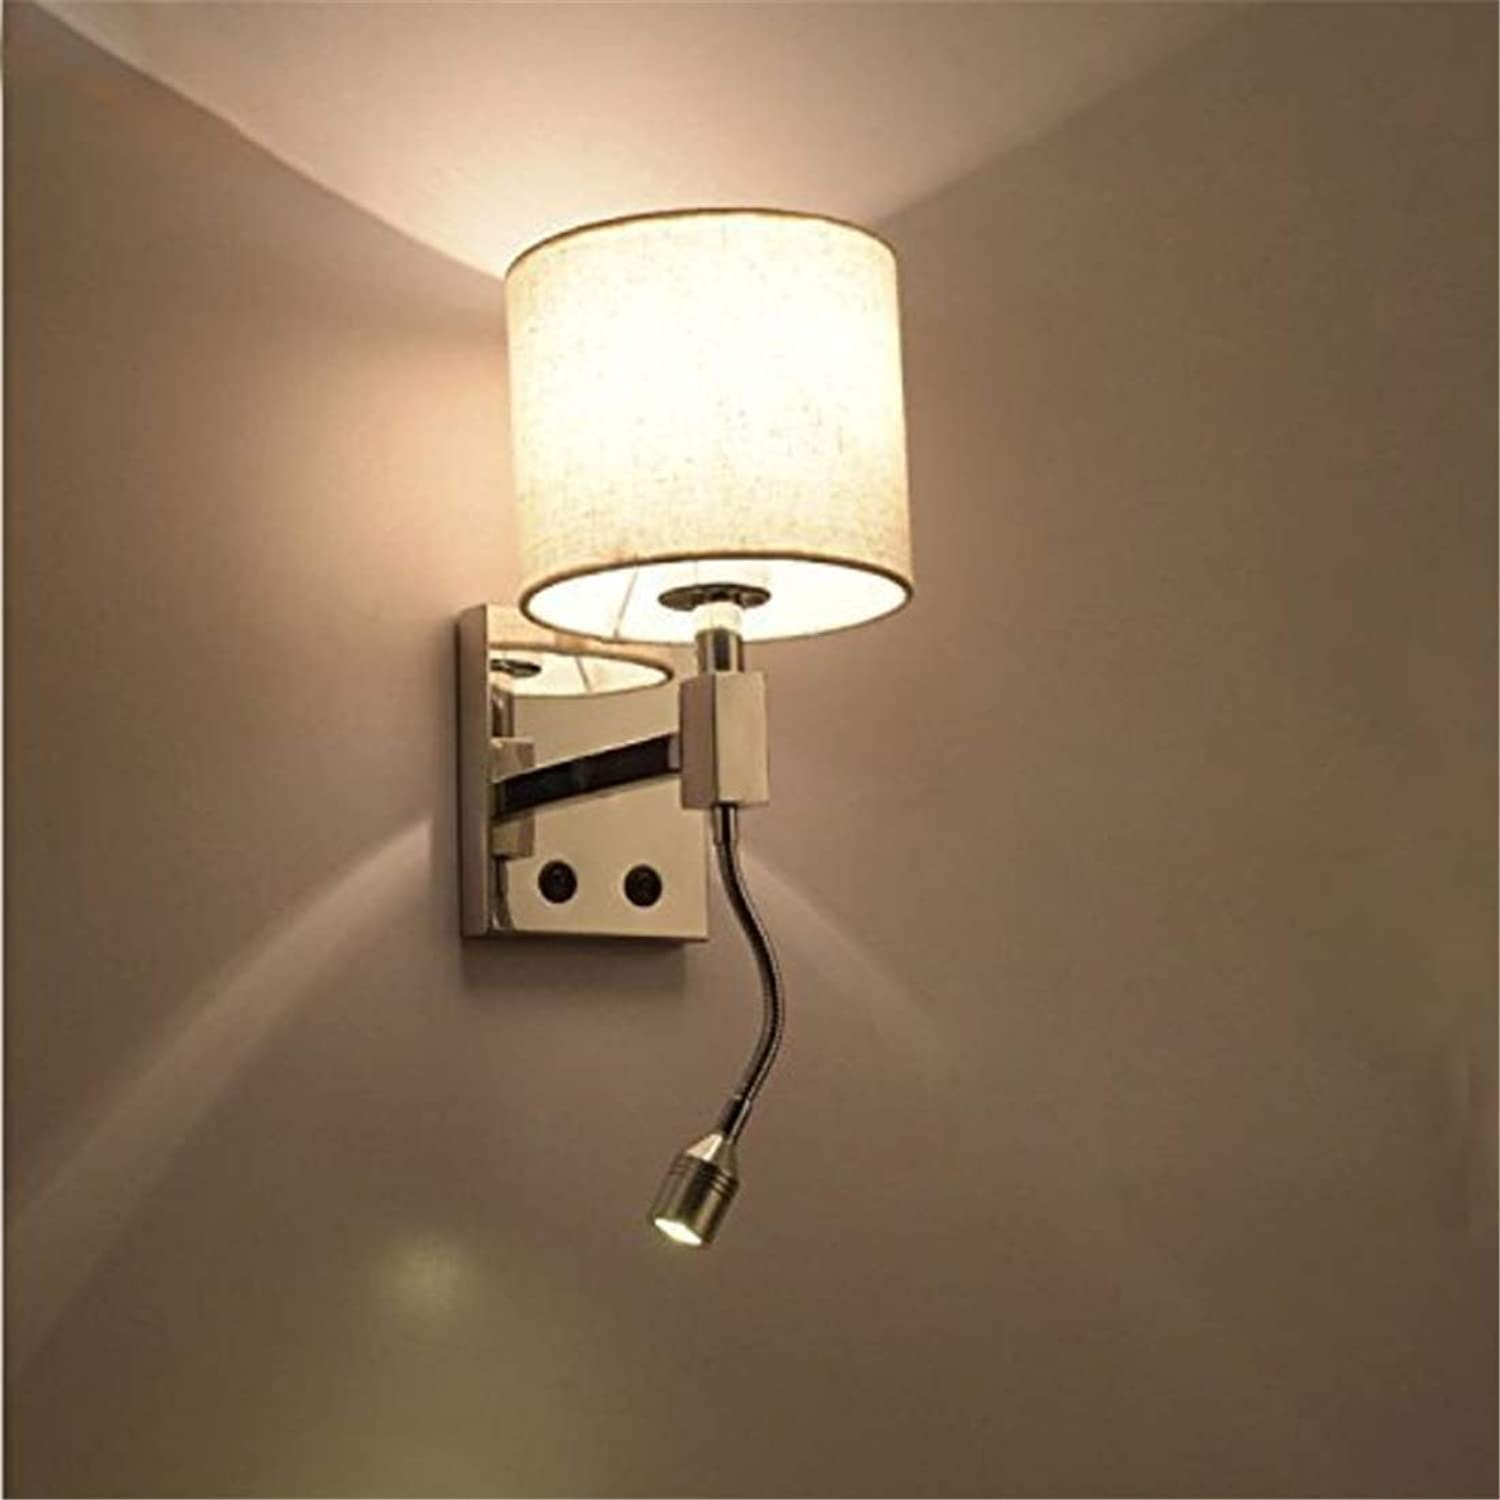 Lichtmodern Cloth Wall Lamp Wall Sconce Light Aisle Bedside Decoration Light